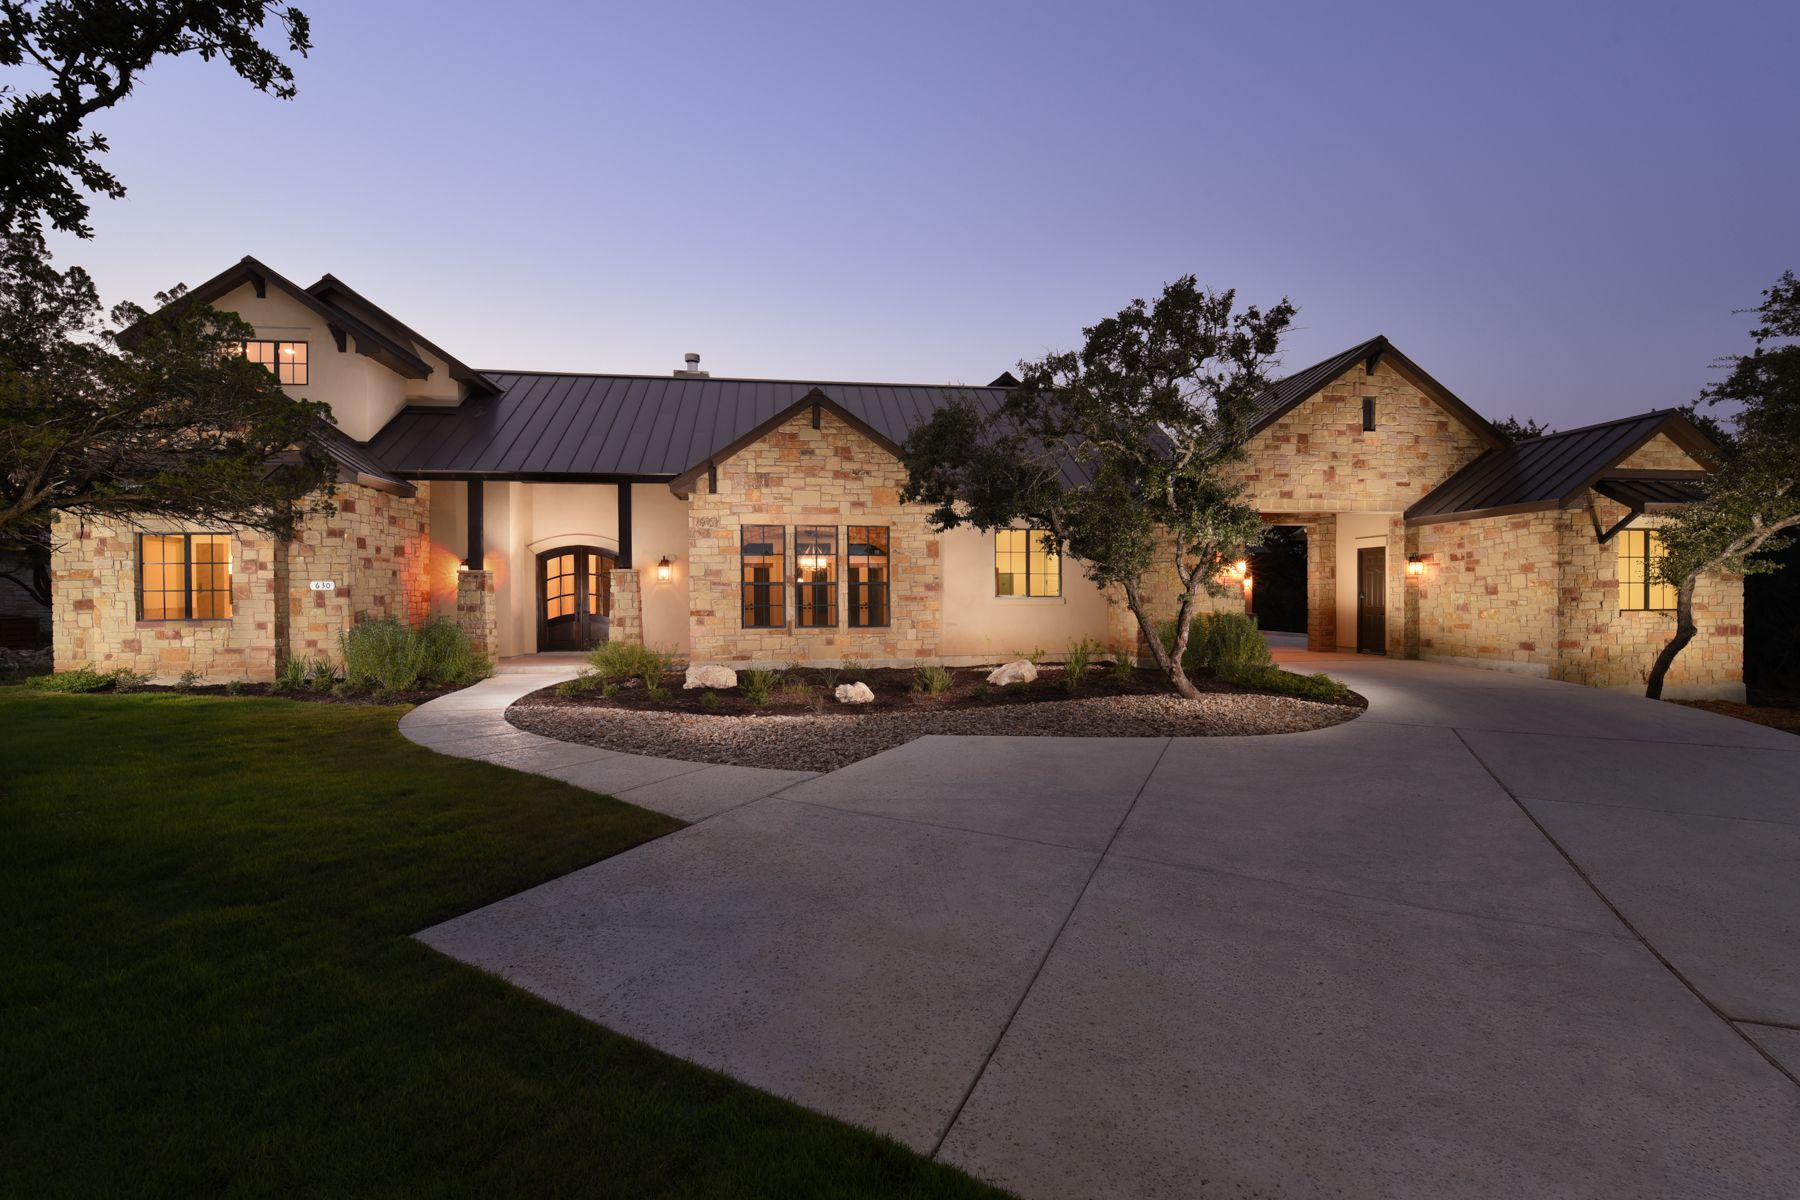 texas hill country architecture google search texas hill